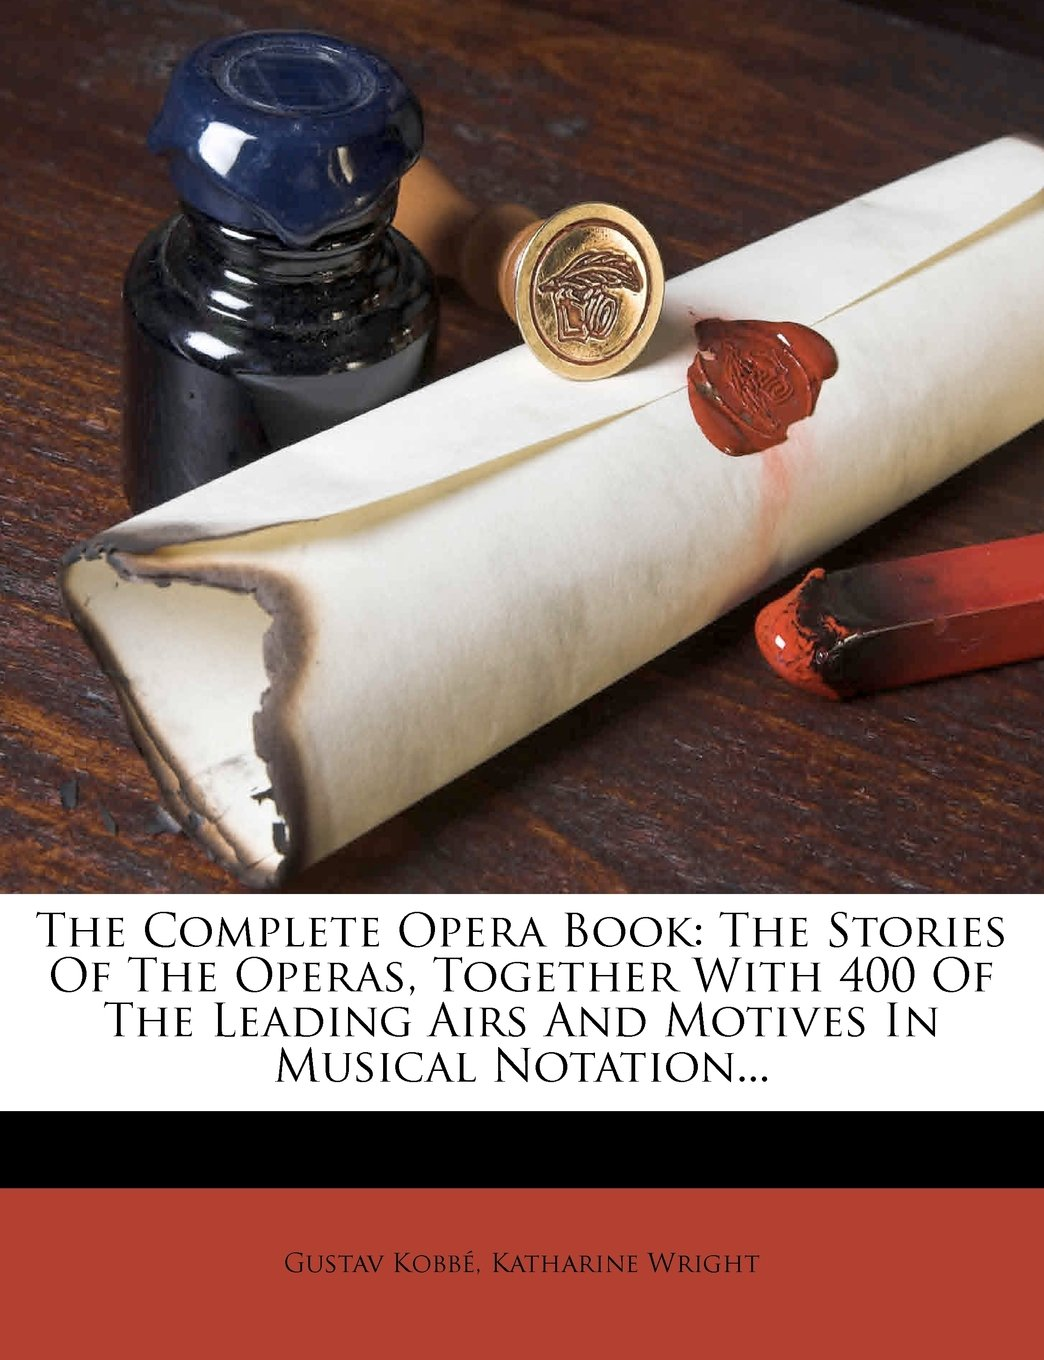 Download The Complete Opera Book: The Stories Of The Operas, Together With 400 Of The Leading Airs And Motives In Musical Notation... ebook